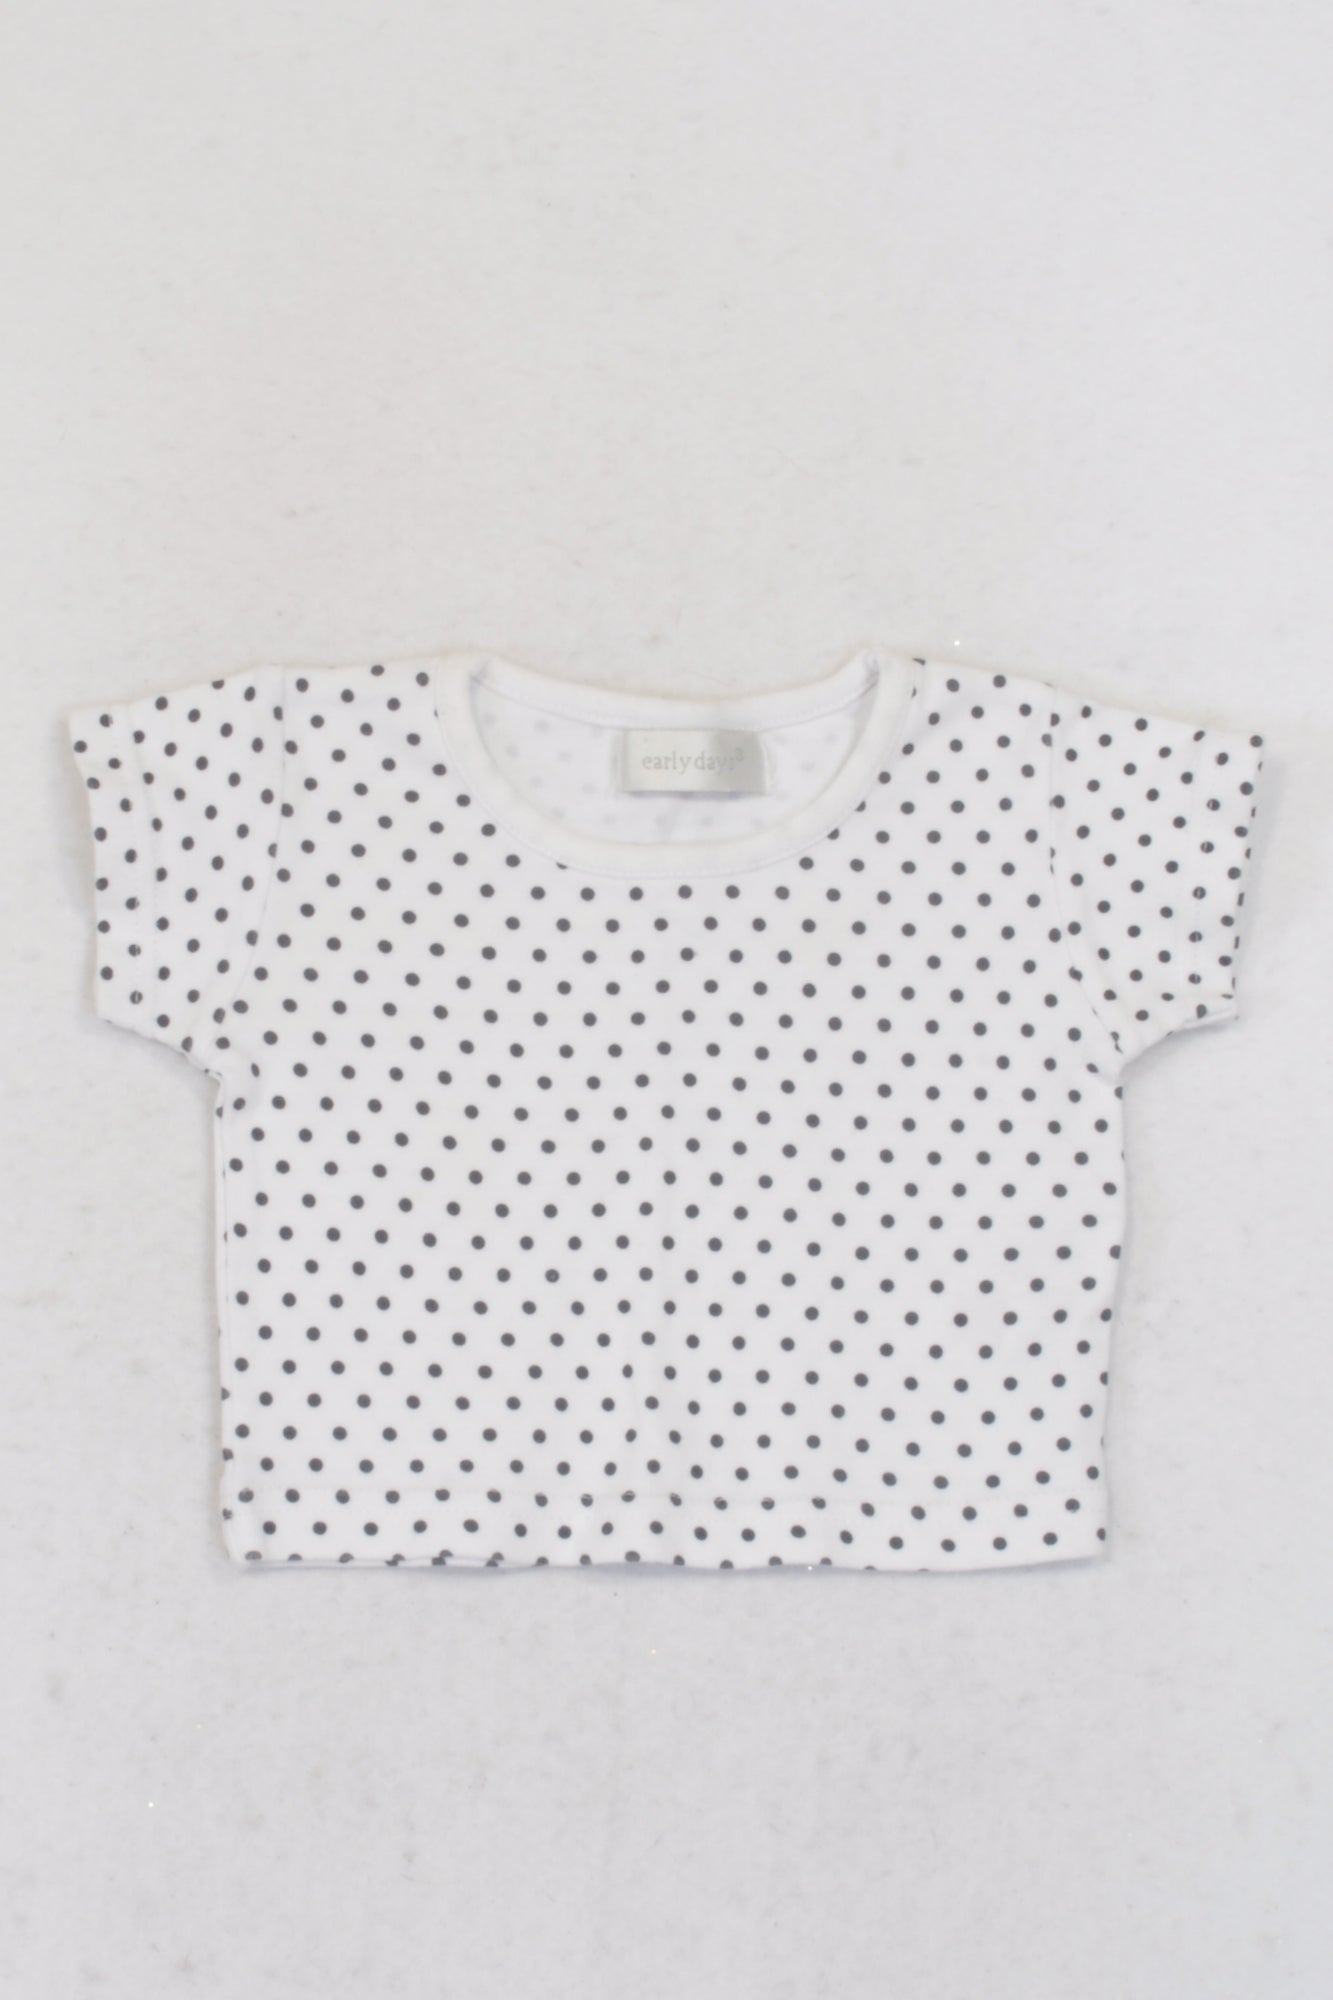 Early Days White & Navy Dotty T-shirt Girls 0-3 months